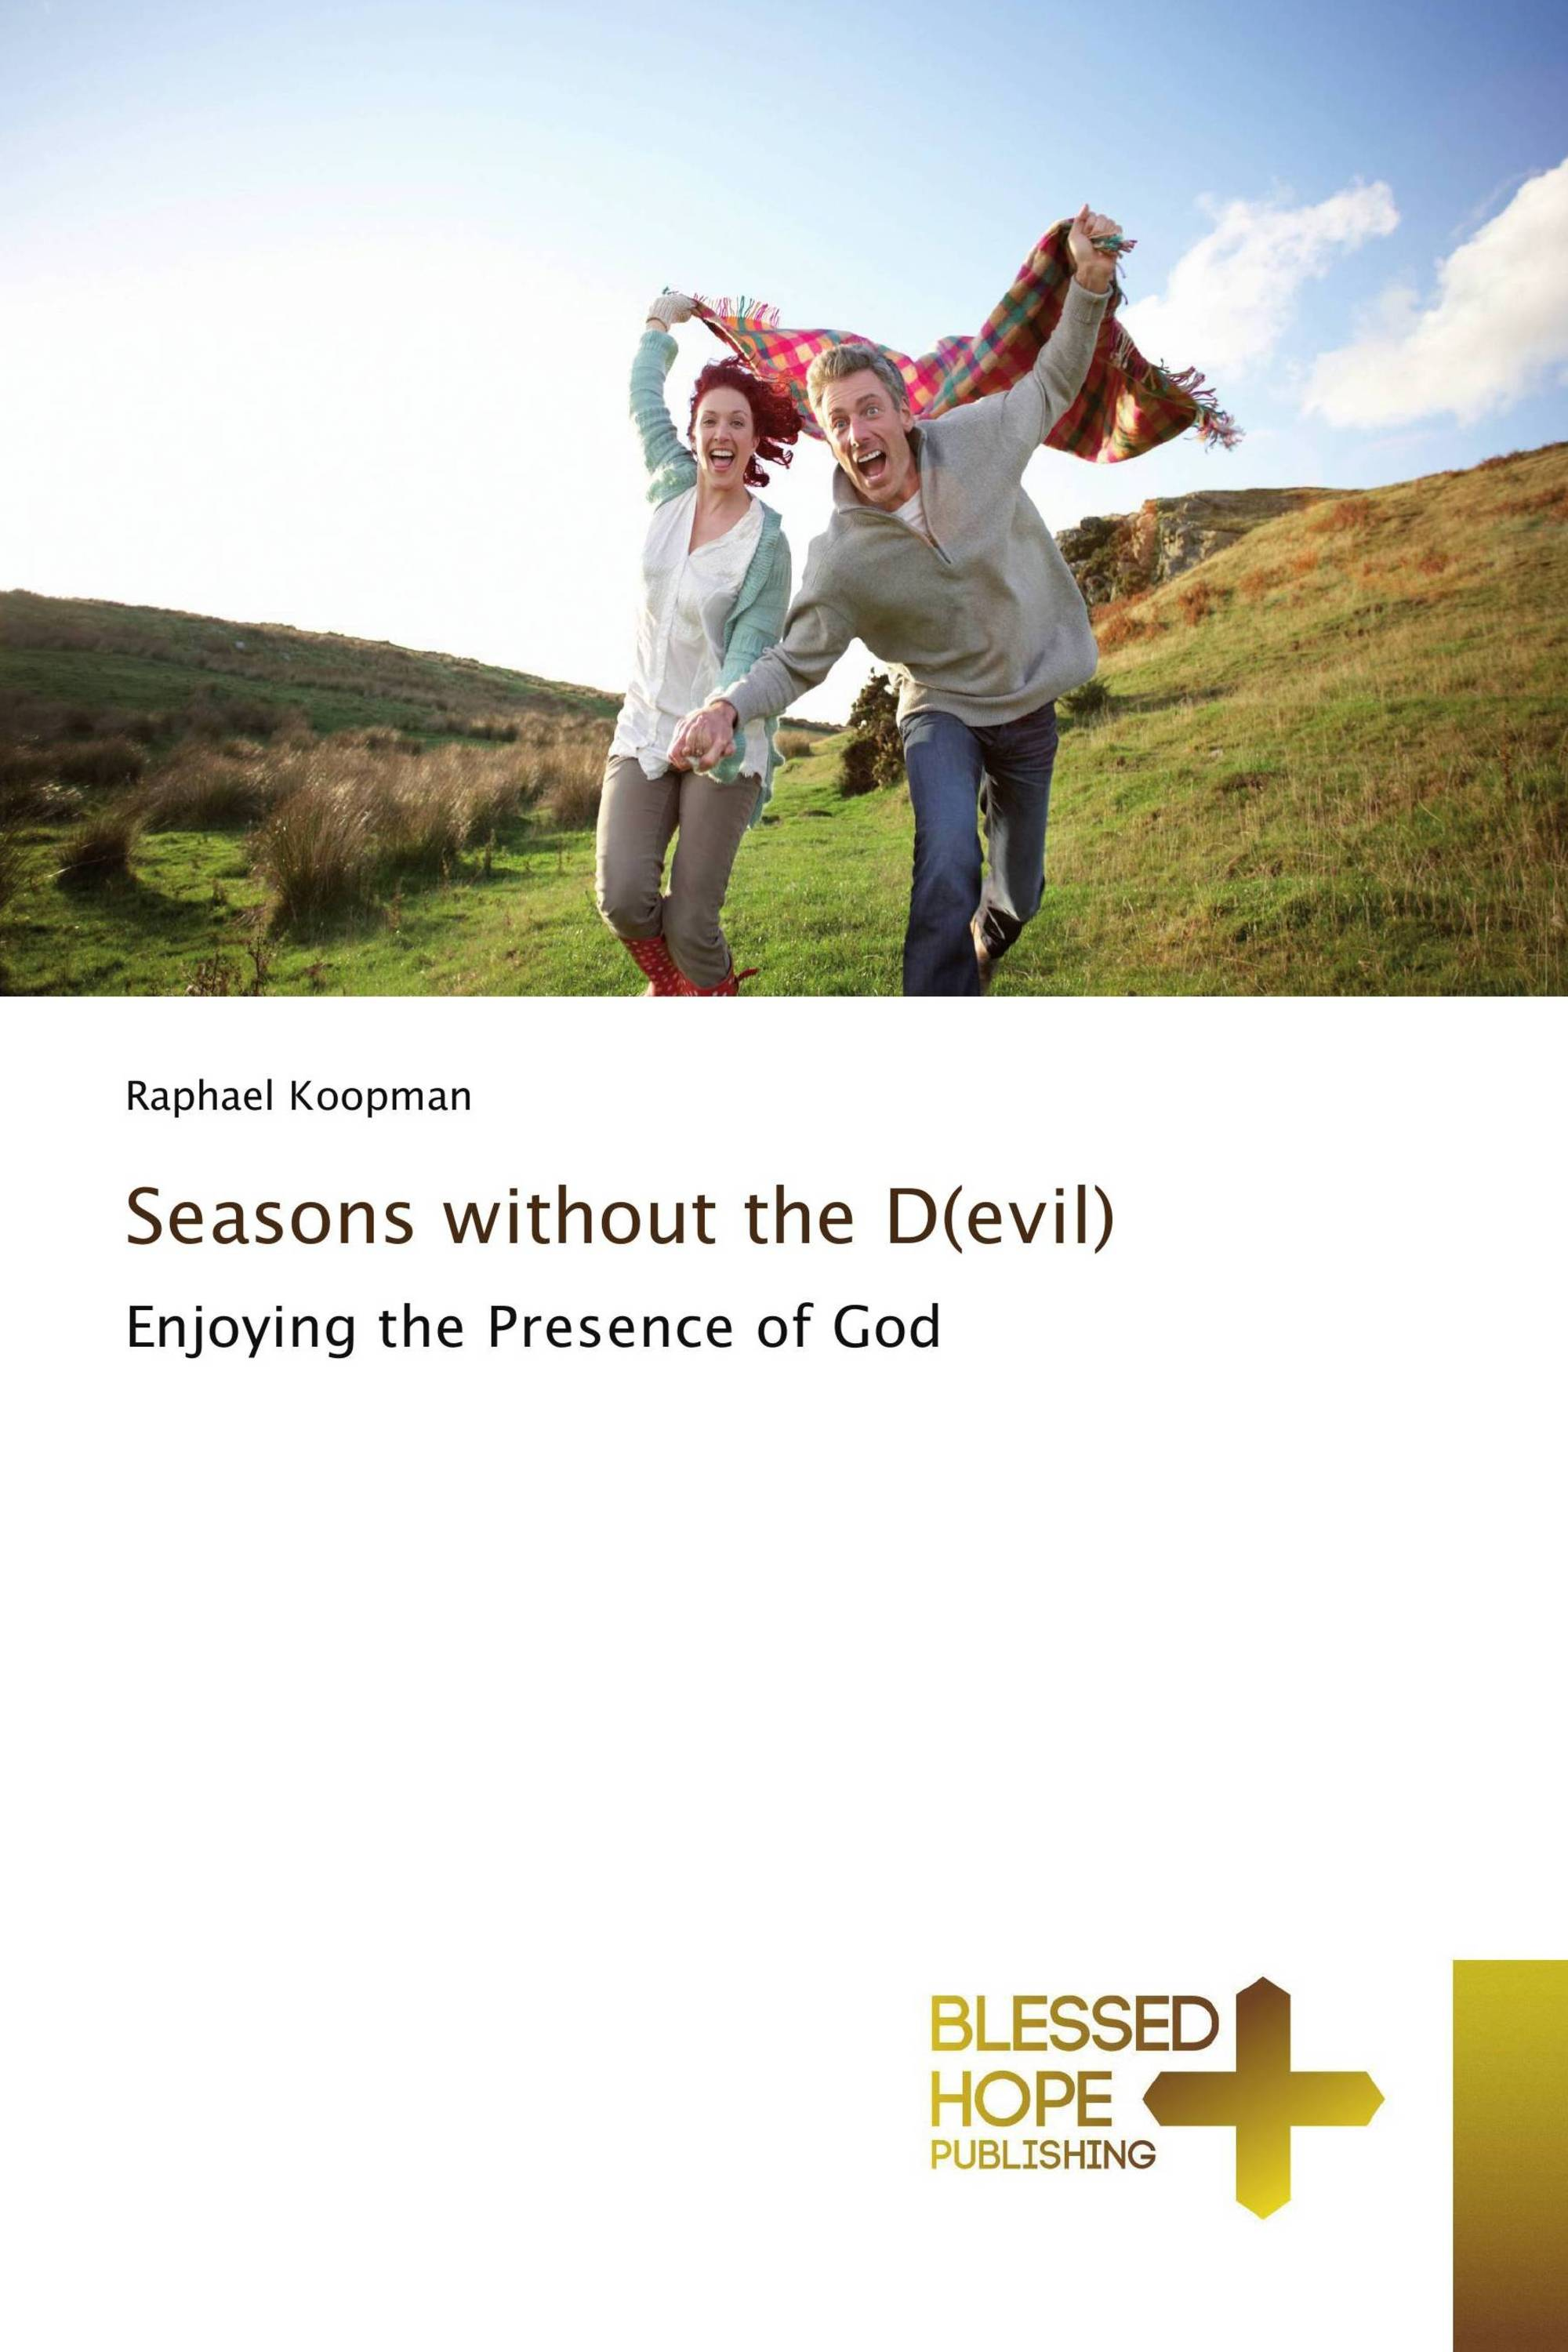 Seasons without the D(evil)